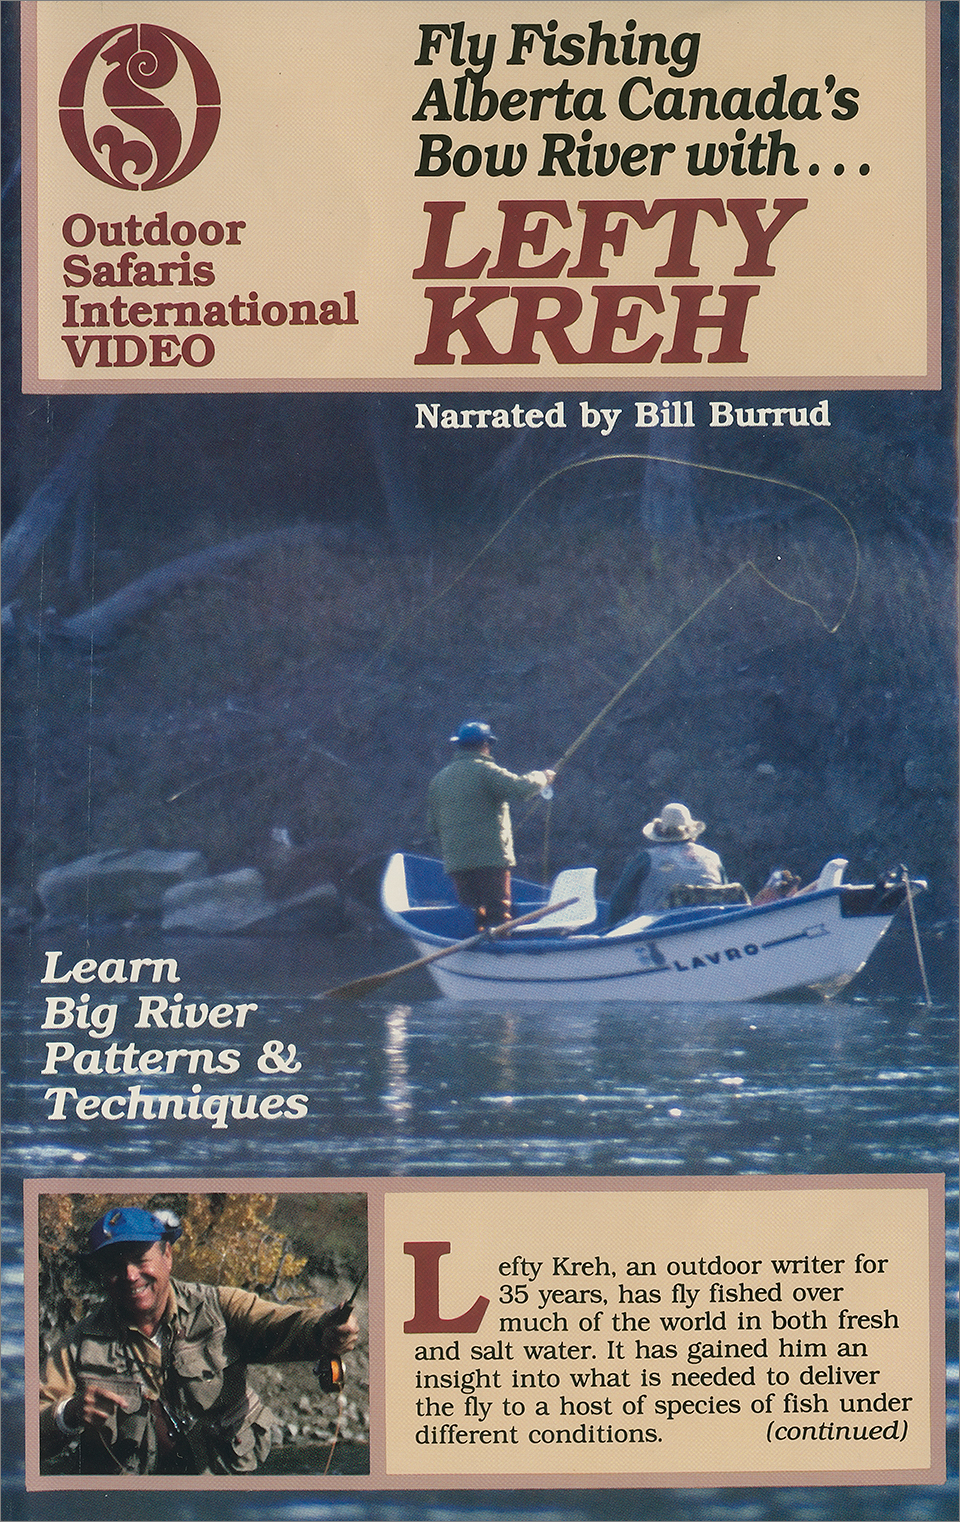 Fly Fishing Alberta's Bow River with Lefty Kreh